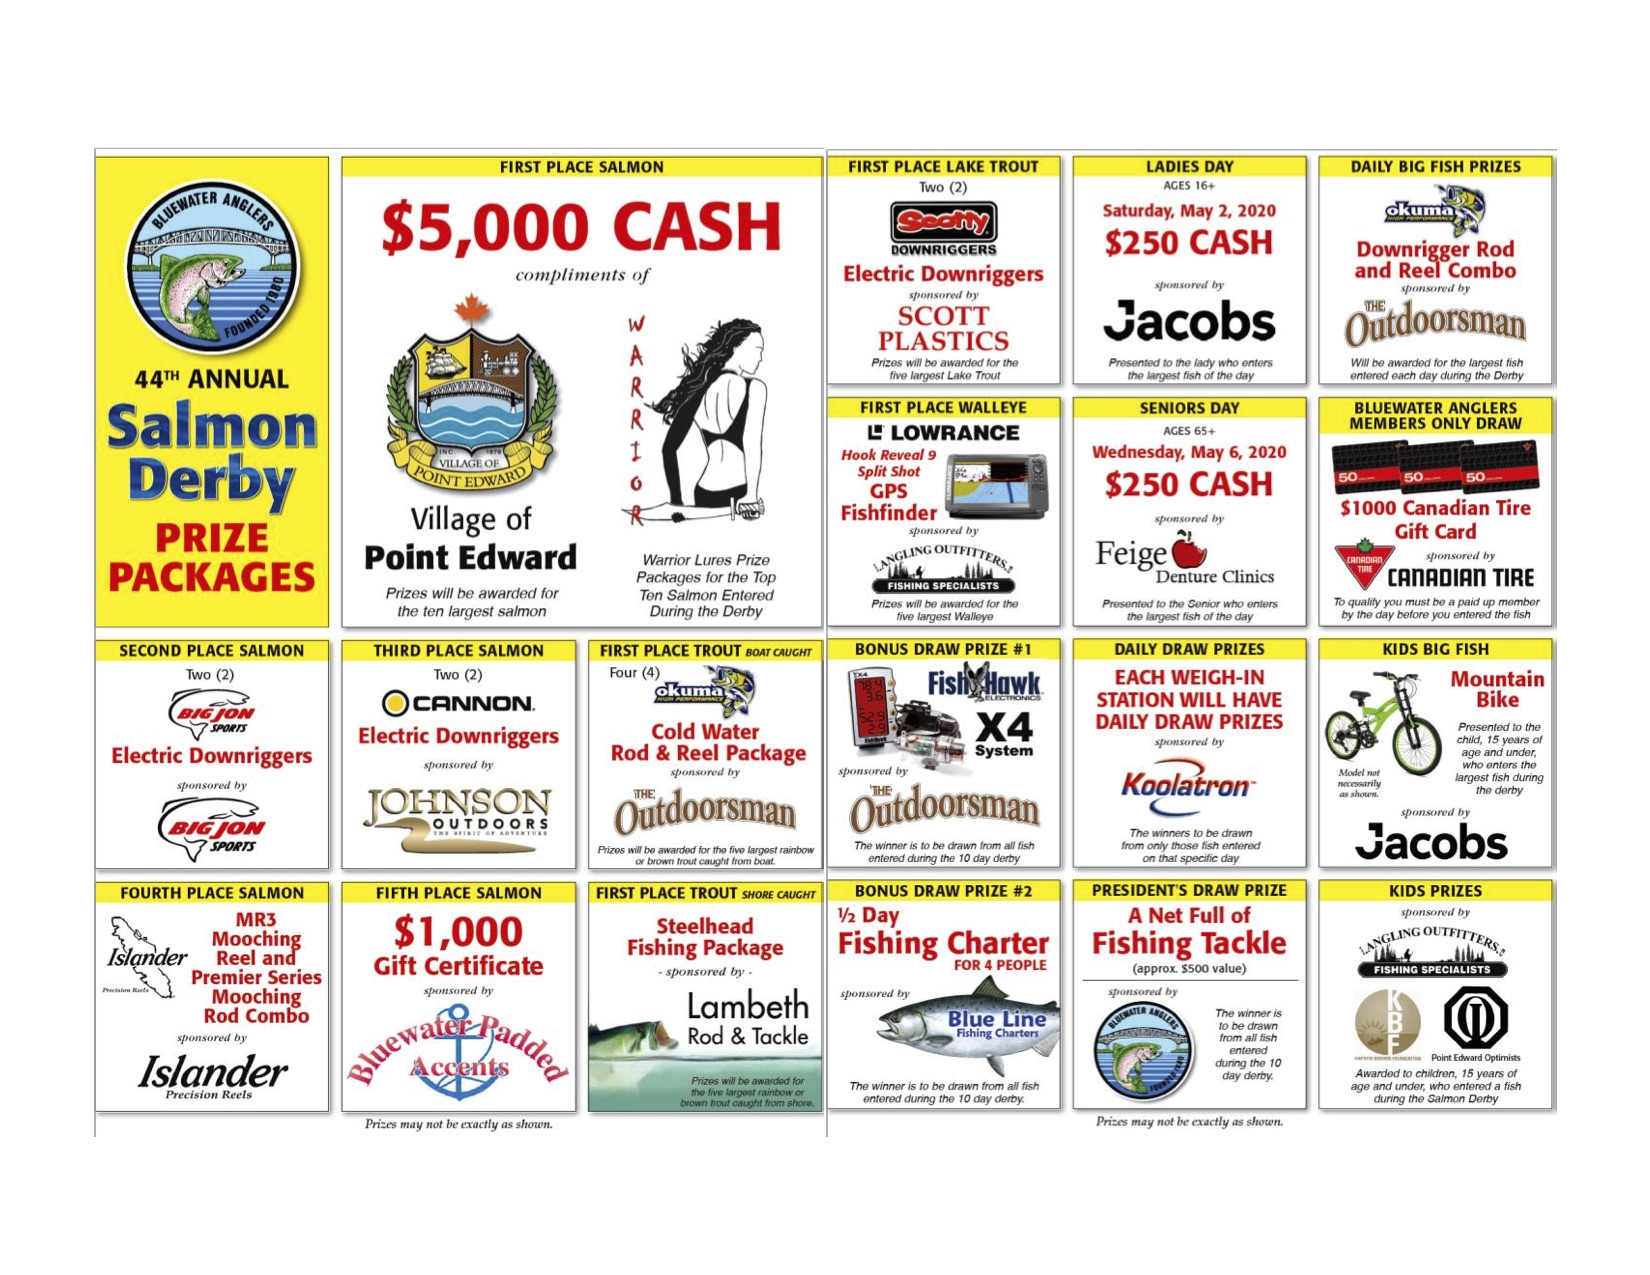 2020 Bluewater Anglers Salmon Derby Major Prizes